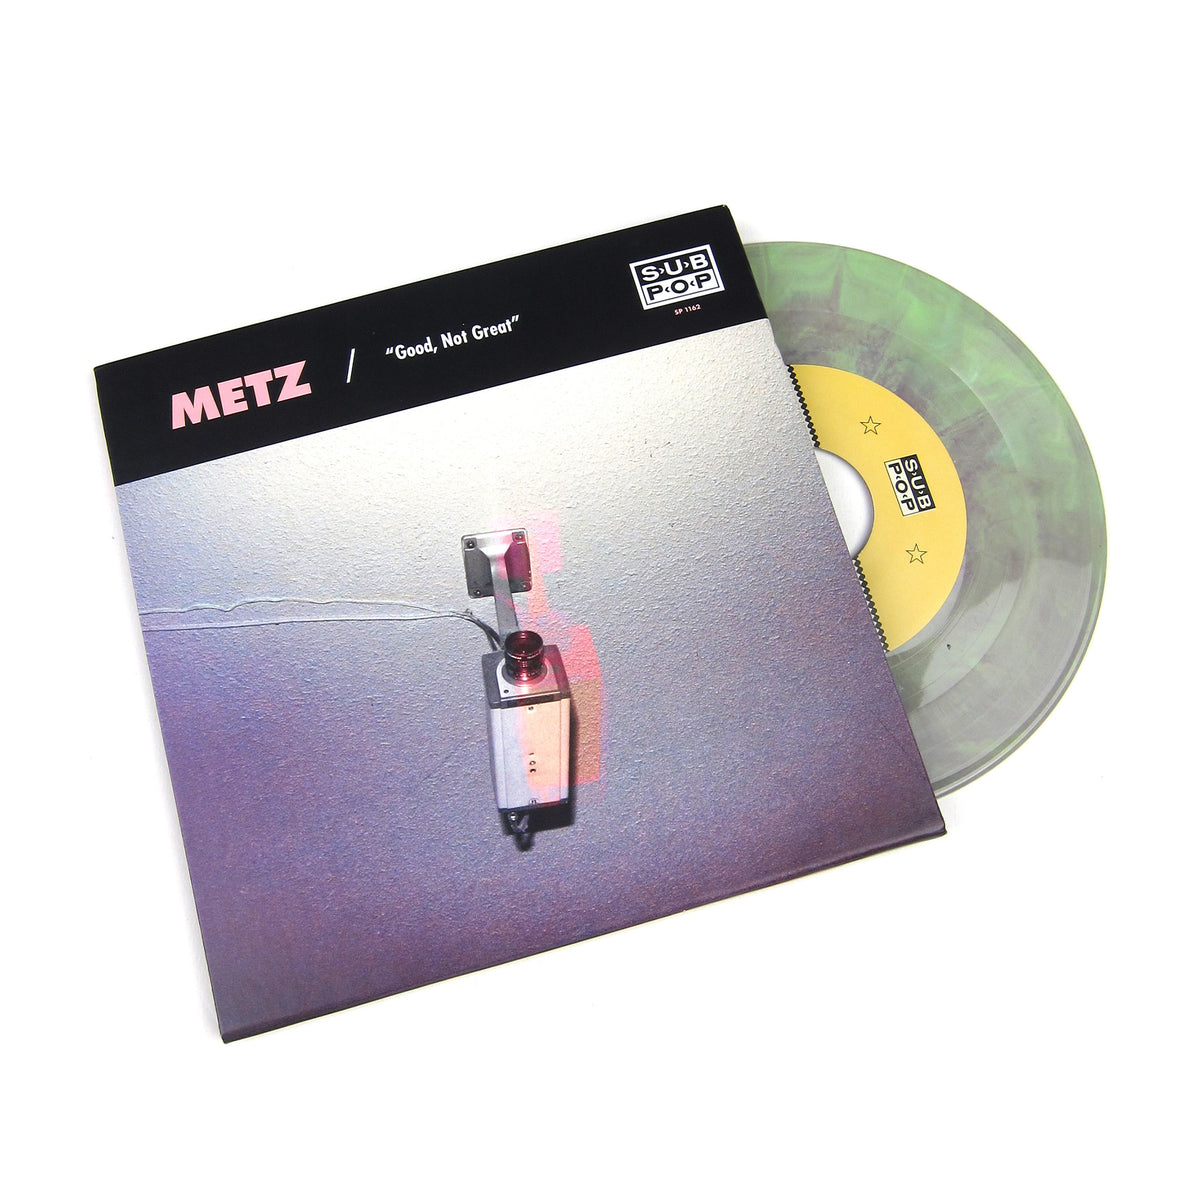 "METZ / Mission Of Burma: Good, Not Great / Get Off (Colored Vinyl) Vinyl 7"" (Record Store Day)"